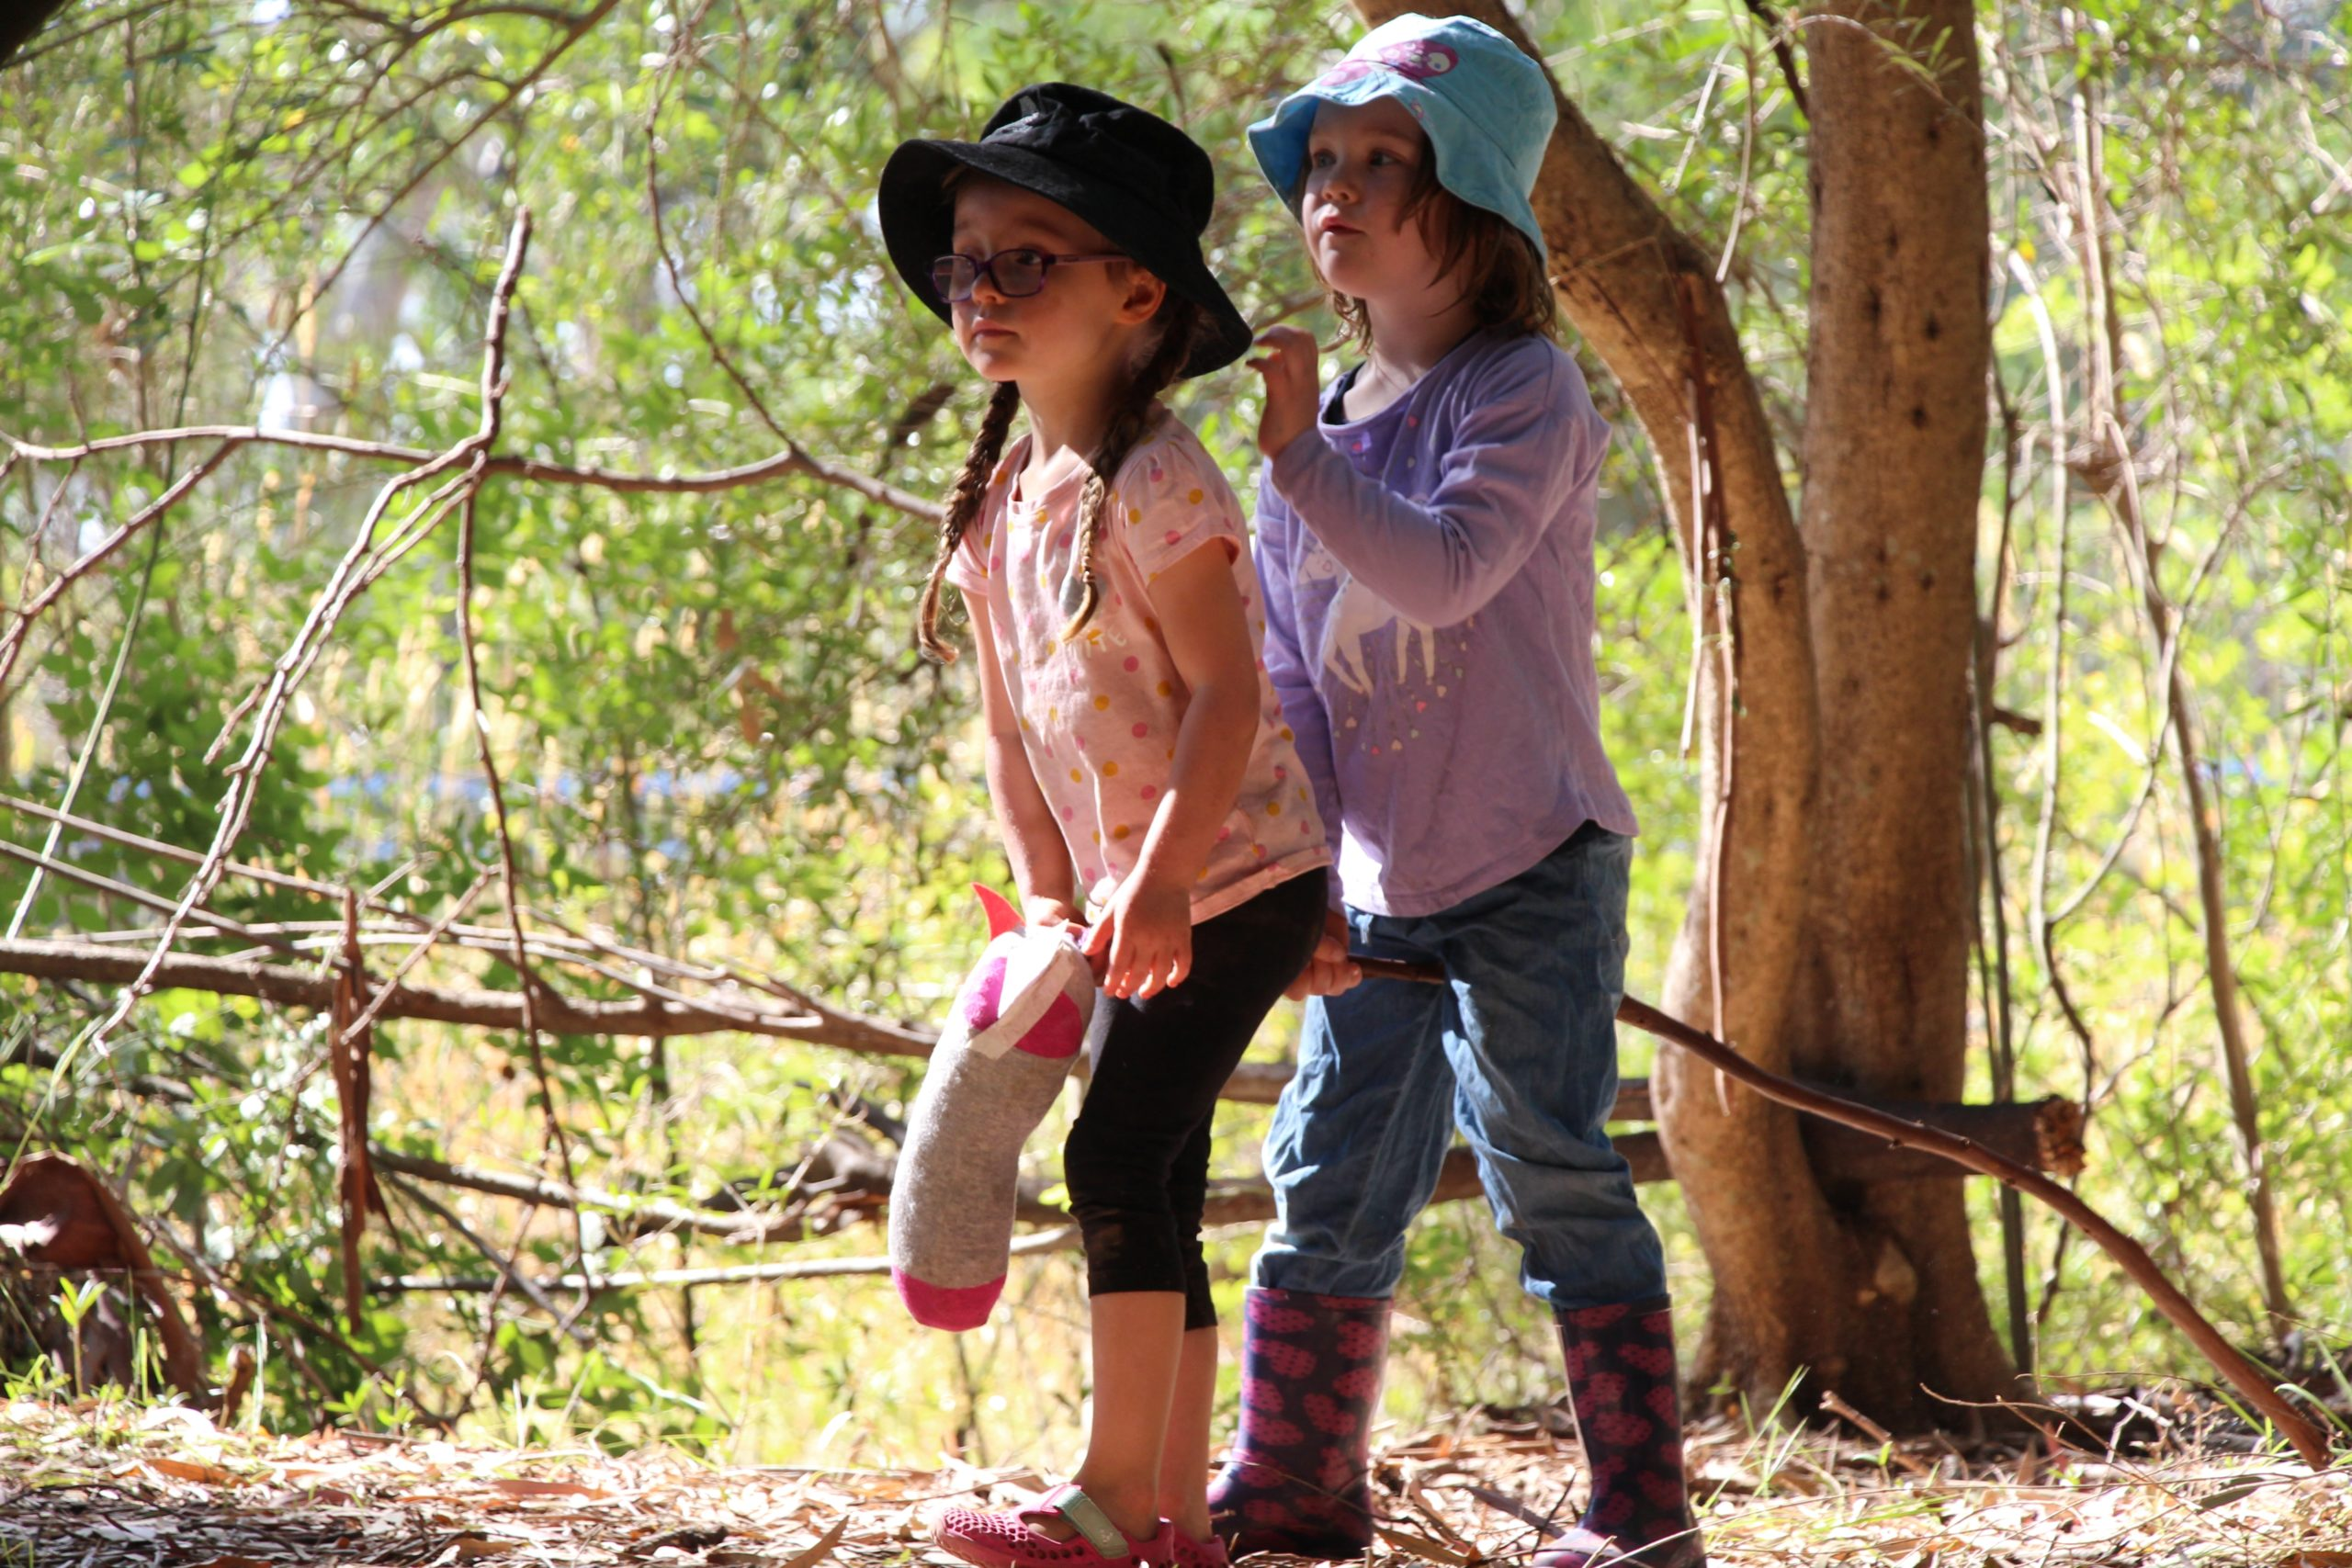 Friends in the Wild – TimberNook South Adelaide – 2 DAY REGISTRATION (Thurs/Fri)